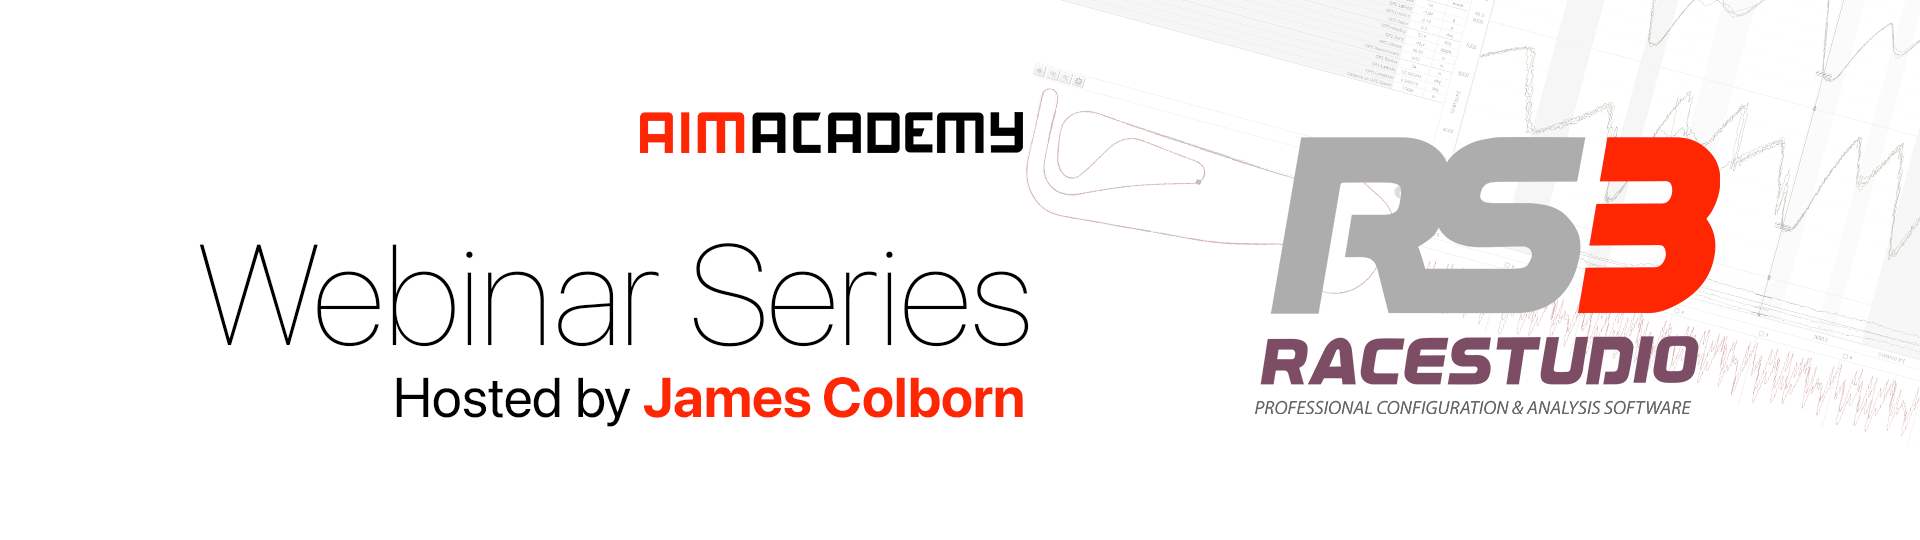 Aim Webinar Series Hosted by James Colborn